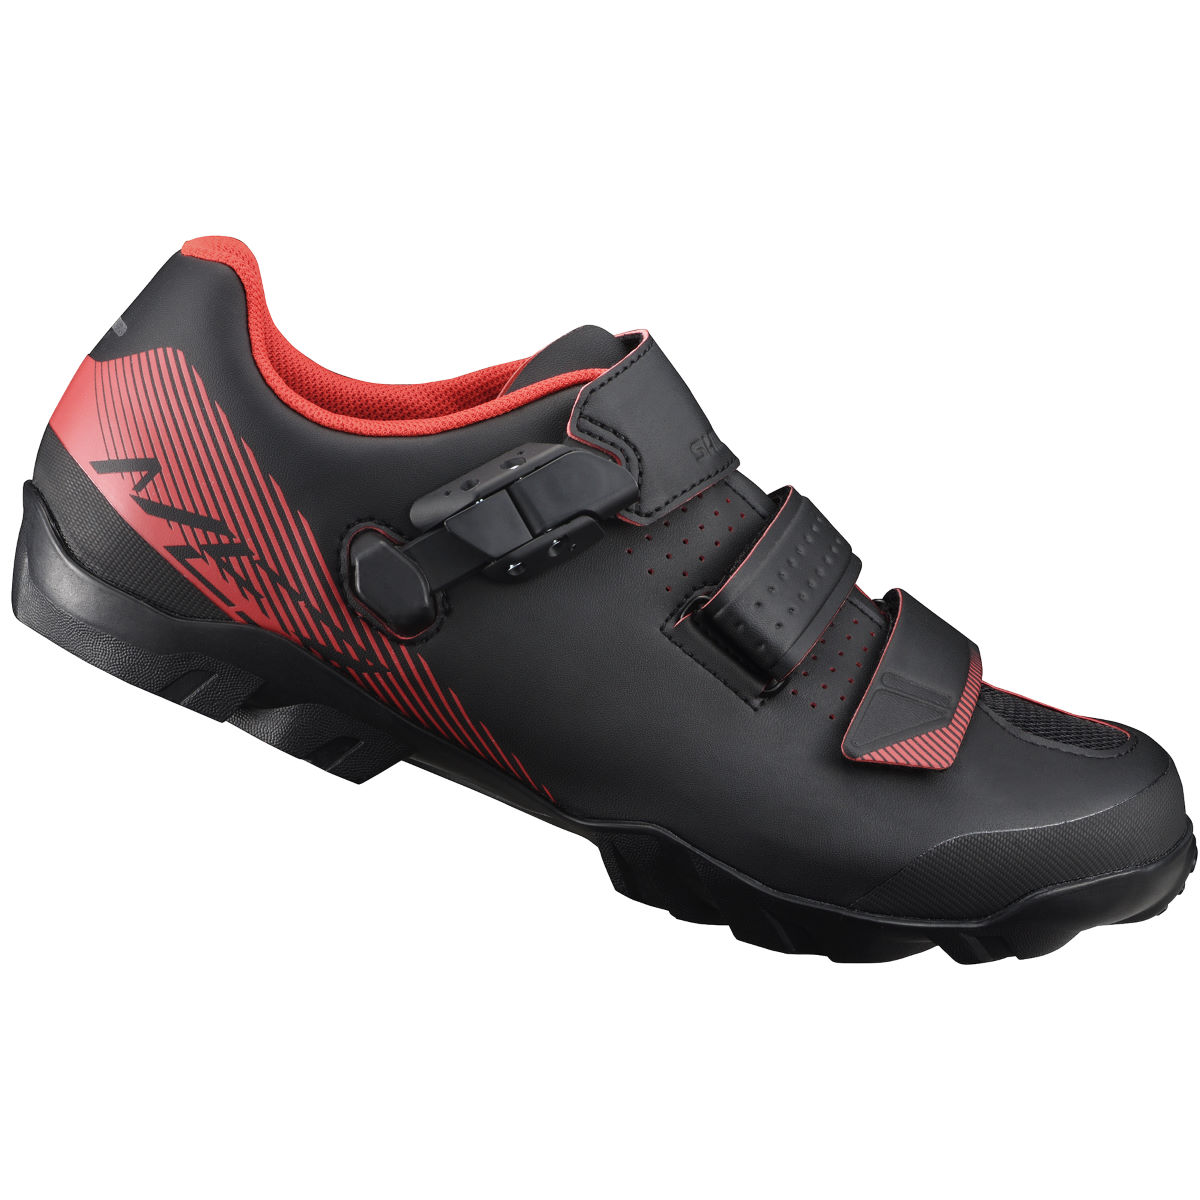 Chaussures VTT Shimano ME3 SPD (coupe large) - 51 Noir/Orange